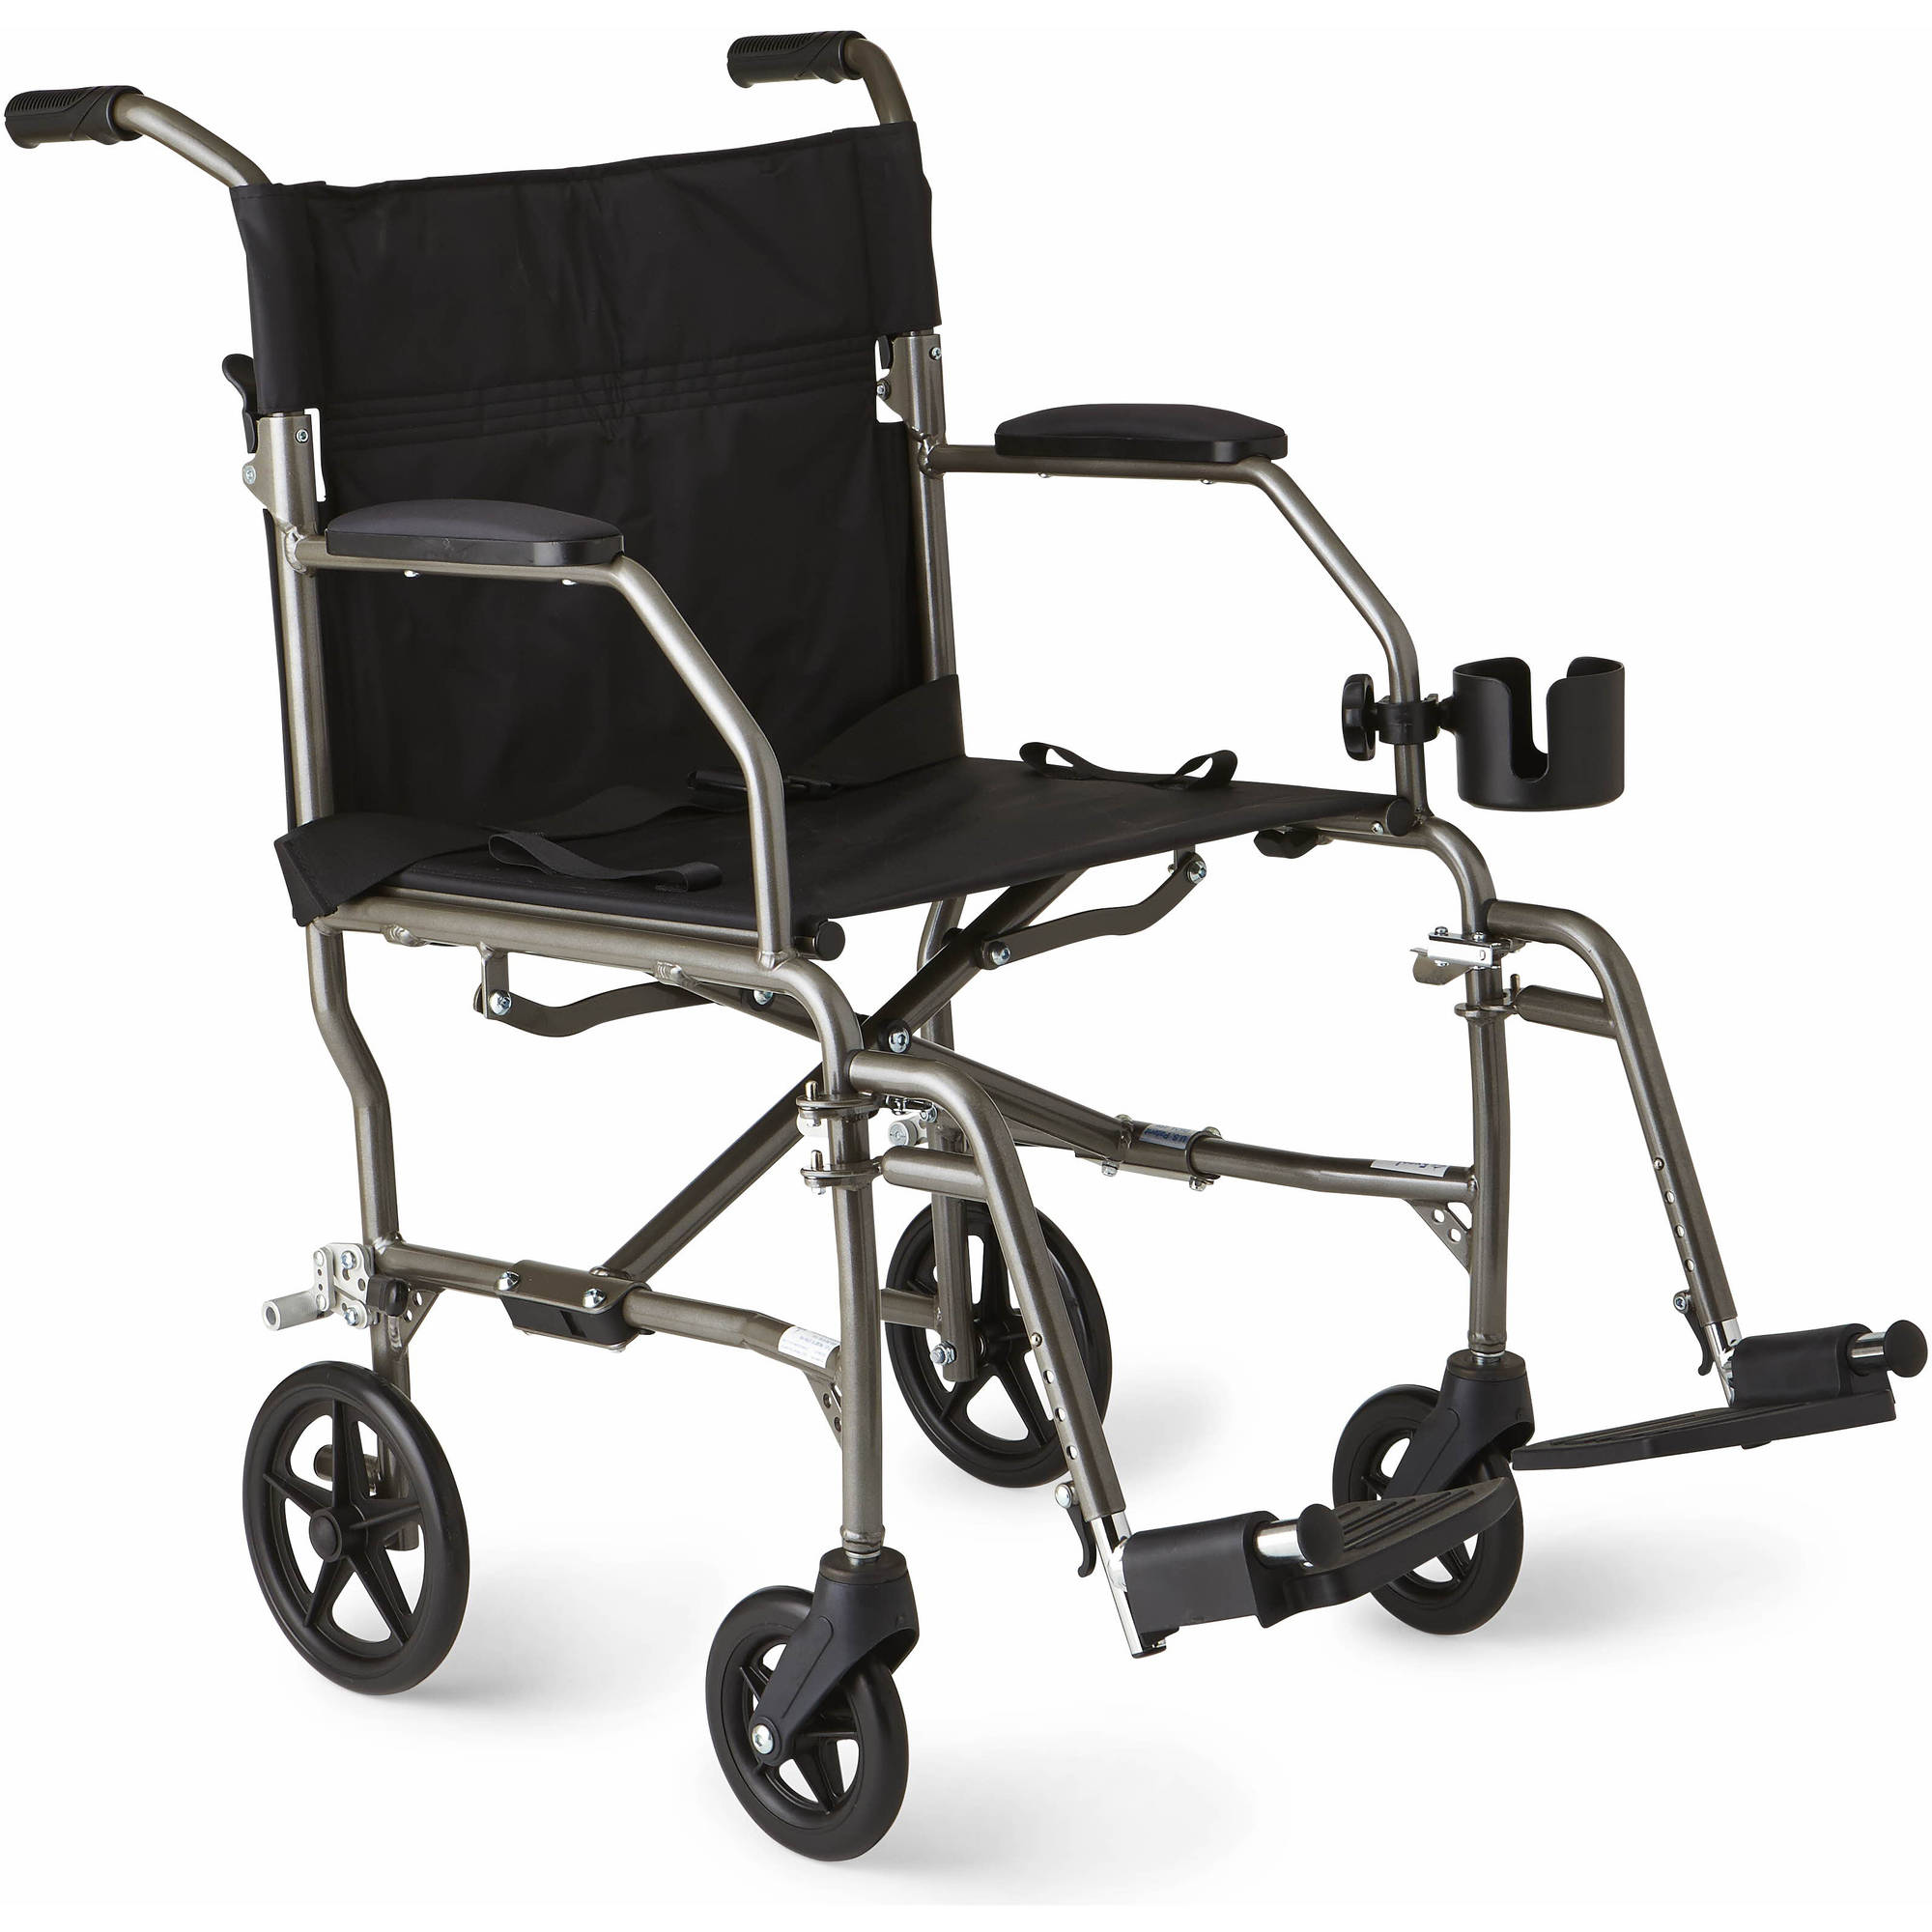 Medline Ultralight Transport Chair, Silver